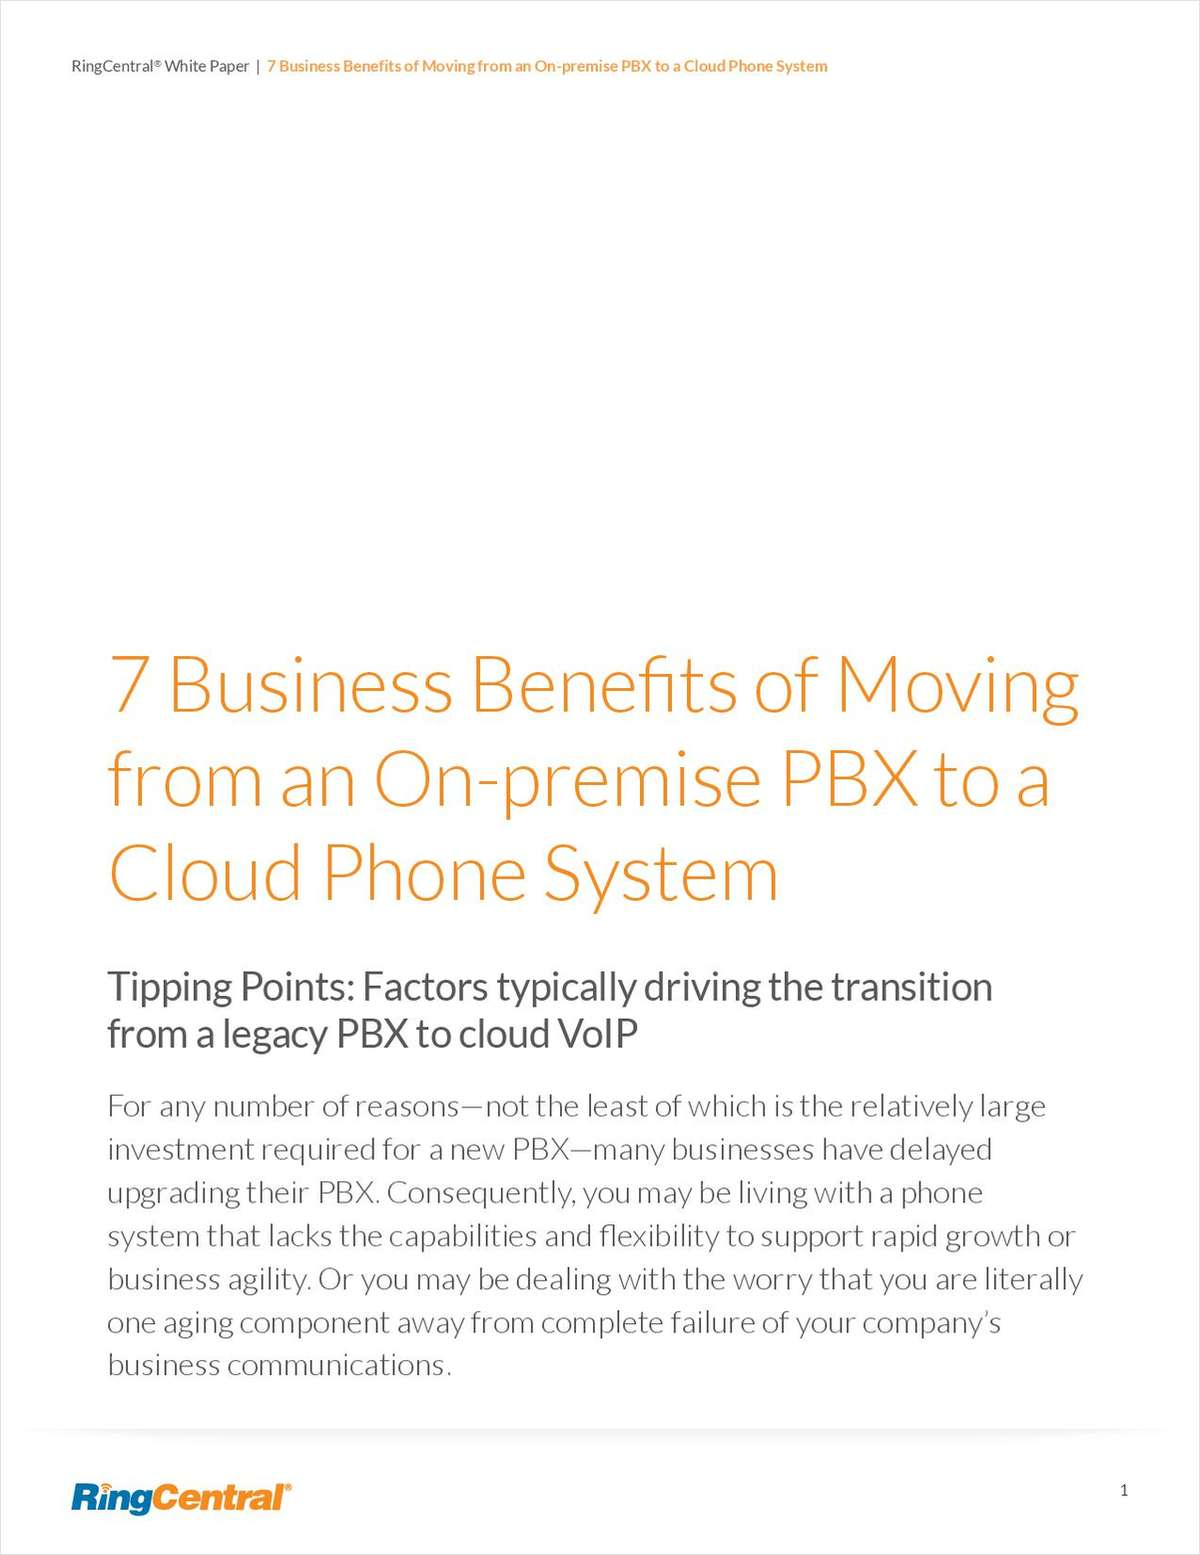 7 Business Benefits of Moving from an On-premise PBX to a Cloud Phone System